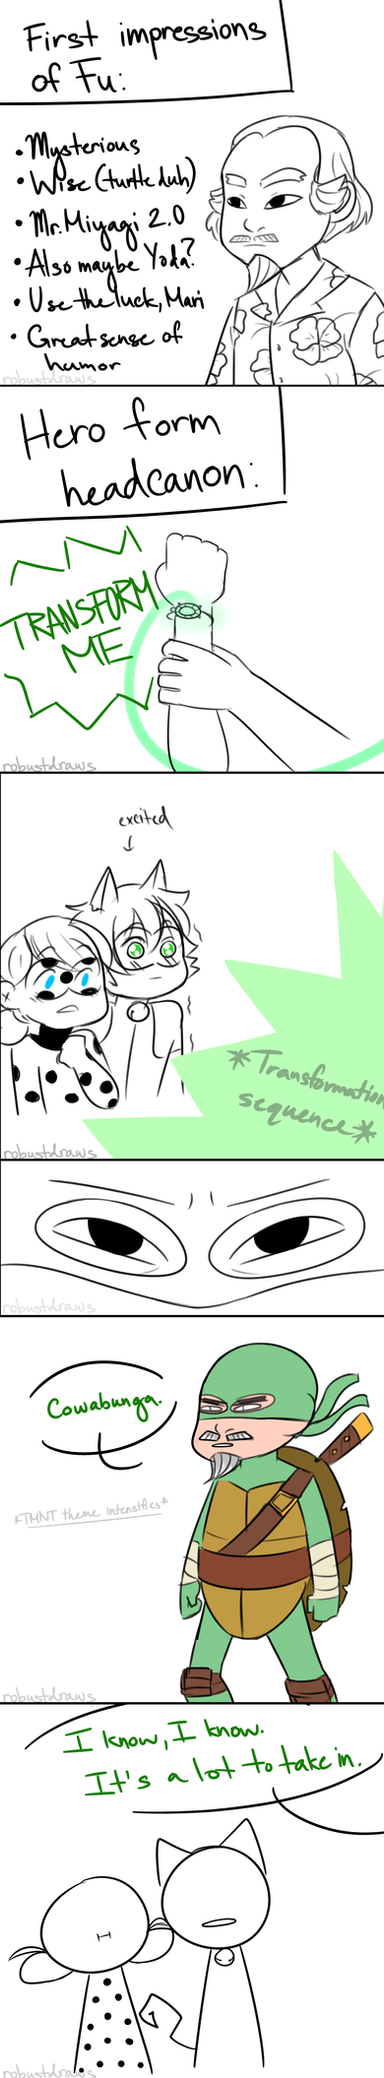 First Impressions by robustdraws